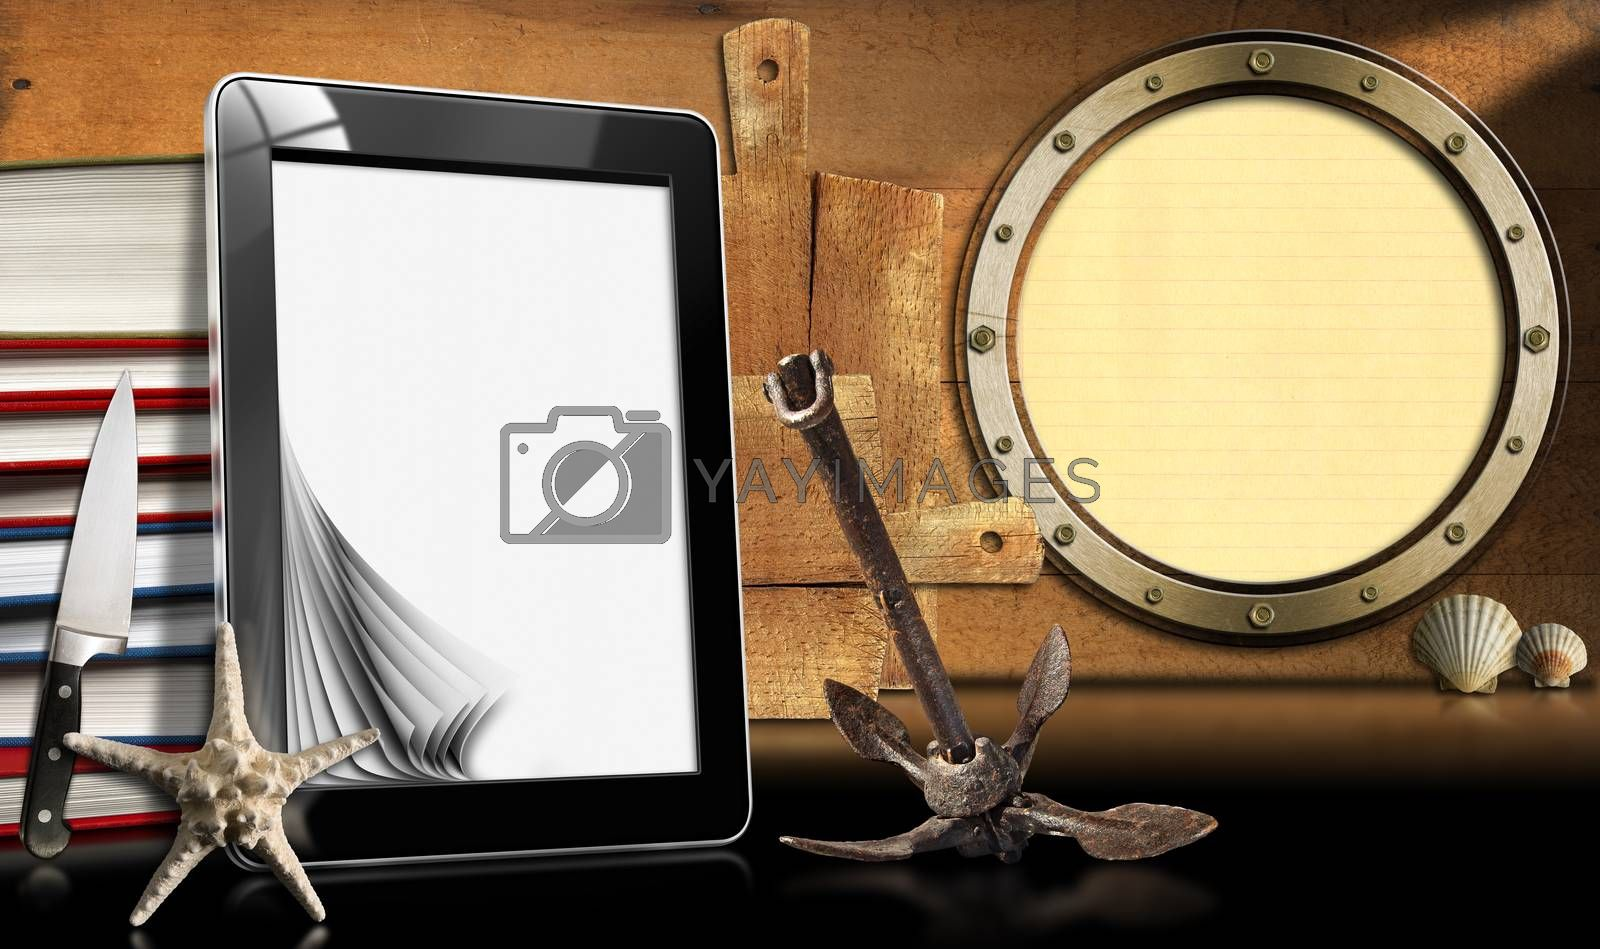 Tablet computer with blank pages and books on wooden wall with porthole, seashells, rusty anchor, starfish and kitchen utensils. Template for recipes or seafood menu